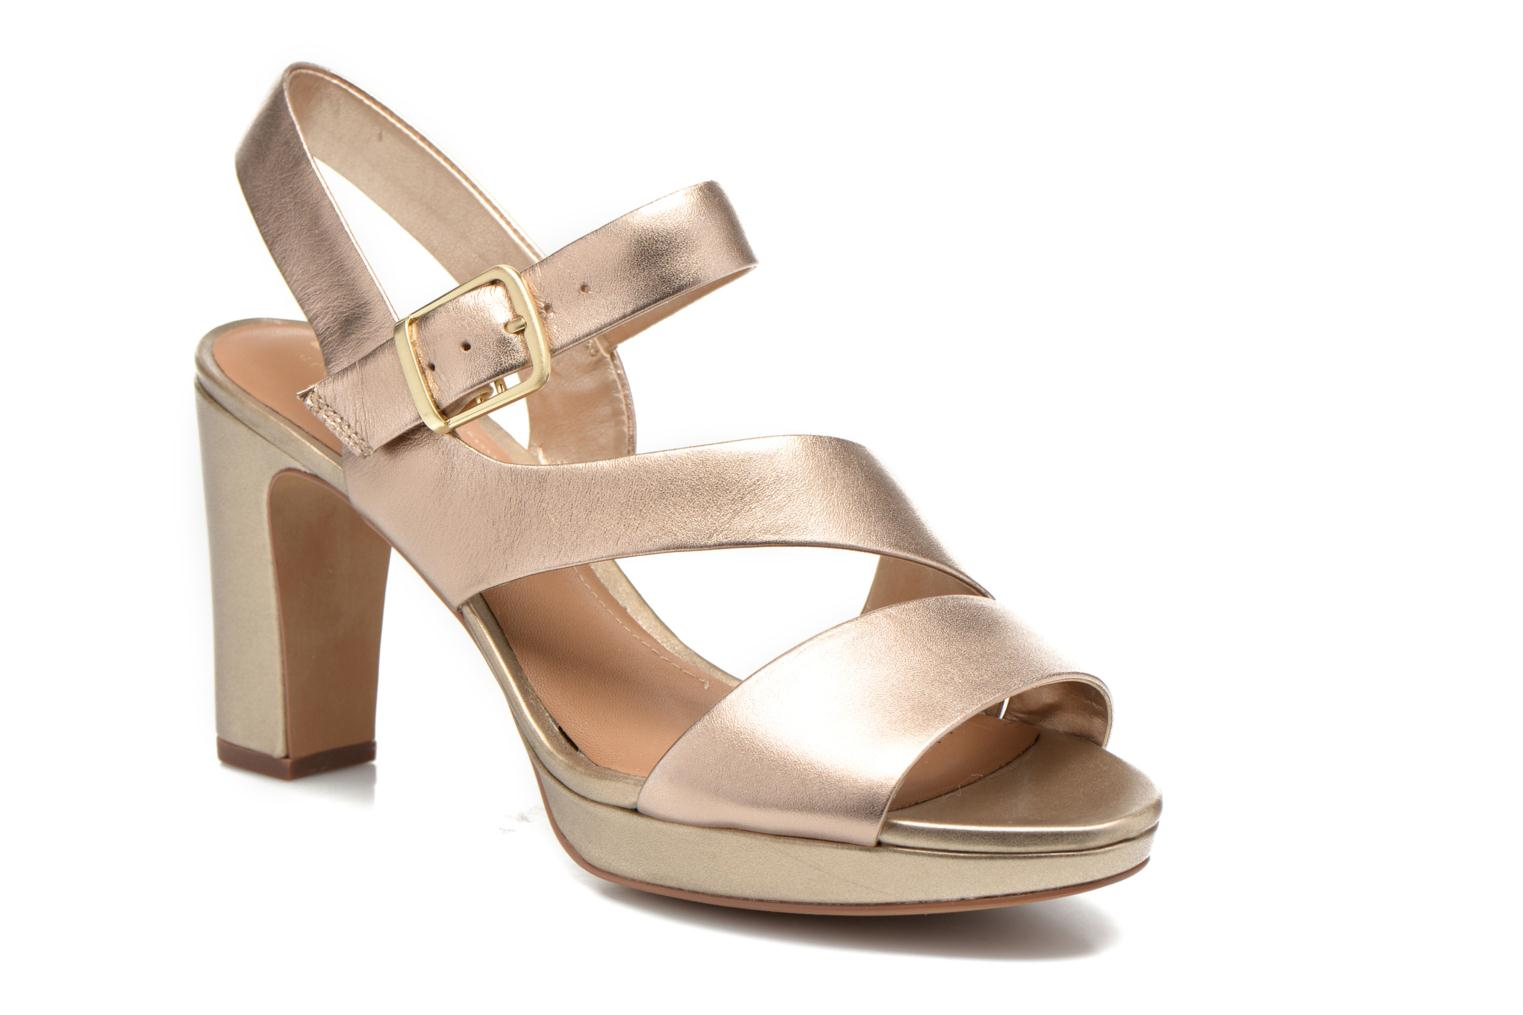 Clarks Jenness Soothe Sandals Color: Bronze and Gold